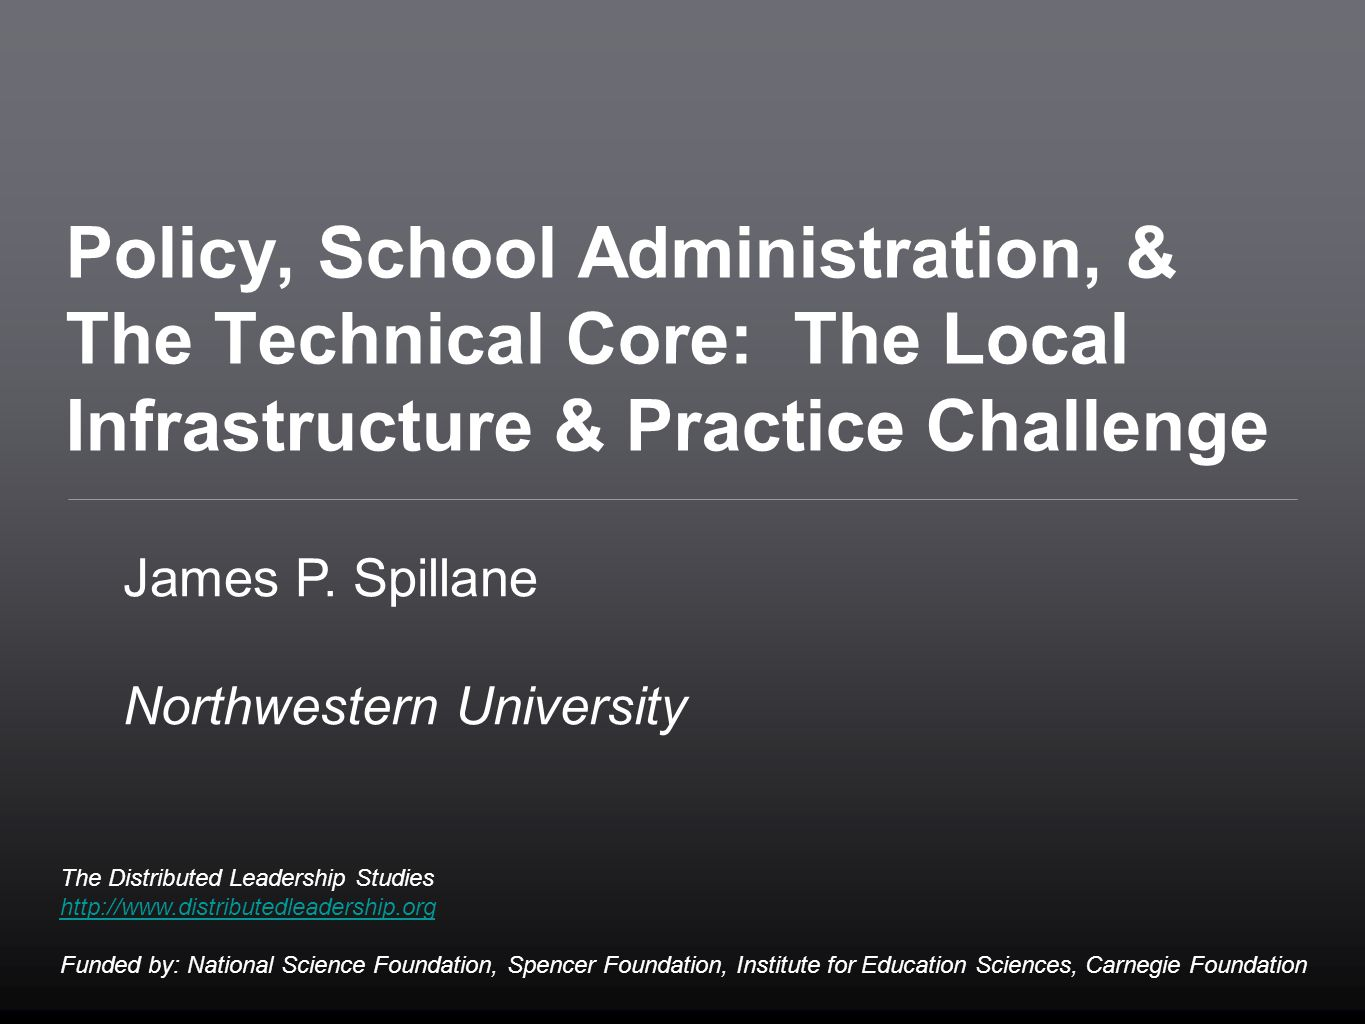 System and organizational [infra]structure  designing infrastructures to support instruction and its improvement  preparing school leaders to diagnosis and design School administrative practice and the resources that enable it  Getting at the the micro processes of administration – school administrative practice –while not losing sight of macro structures Beyond the school principal to other formal leaders (full- and part-time) Development